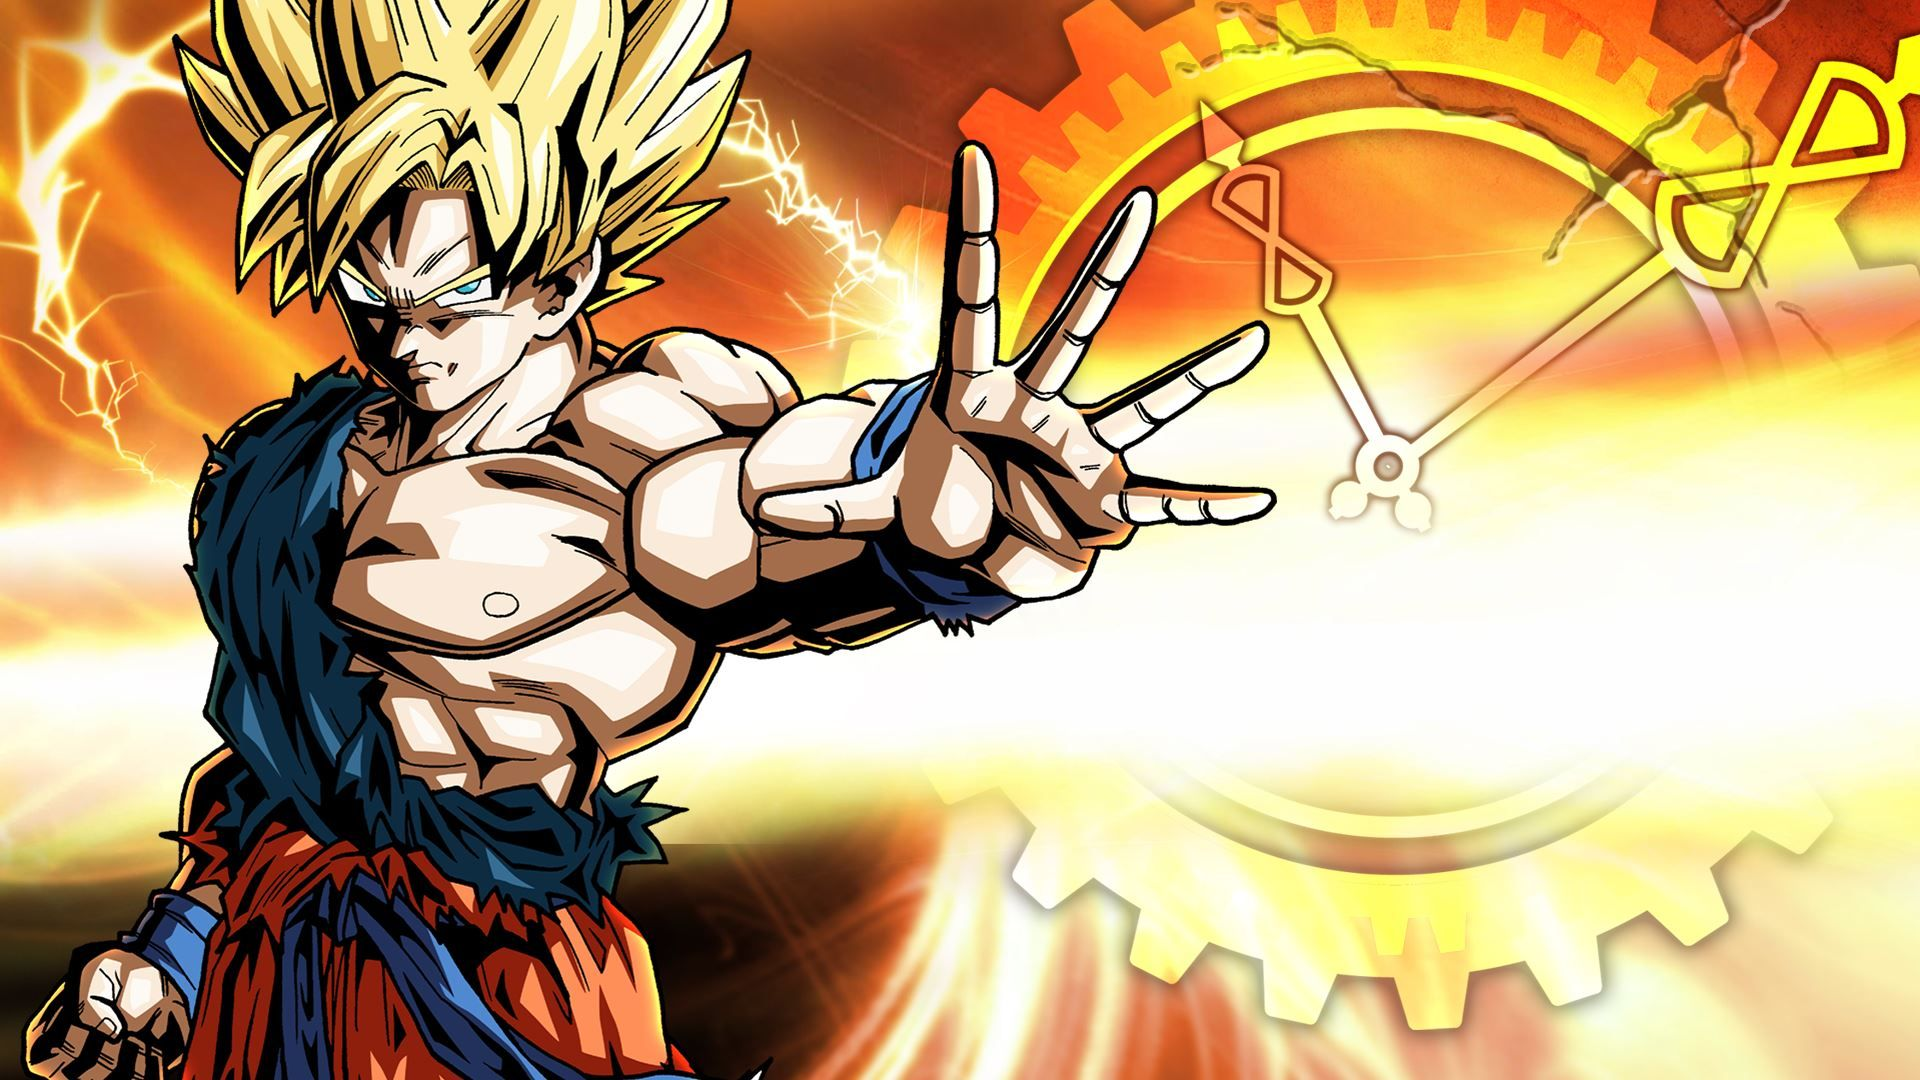 There's a Free Dragon Ball Xenoverse PS4 Theme, You Can